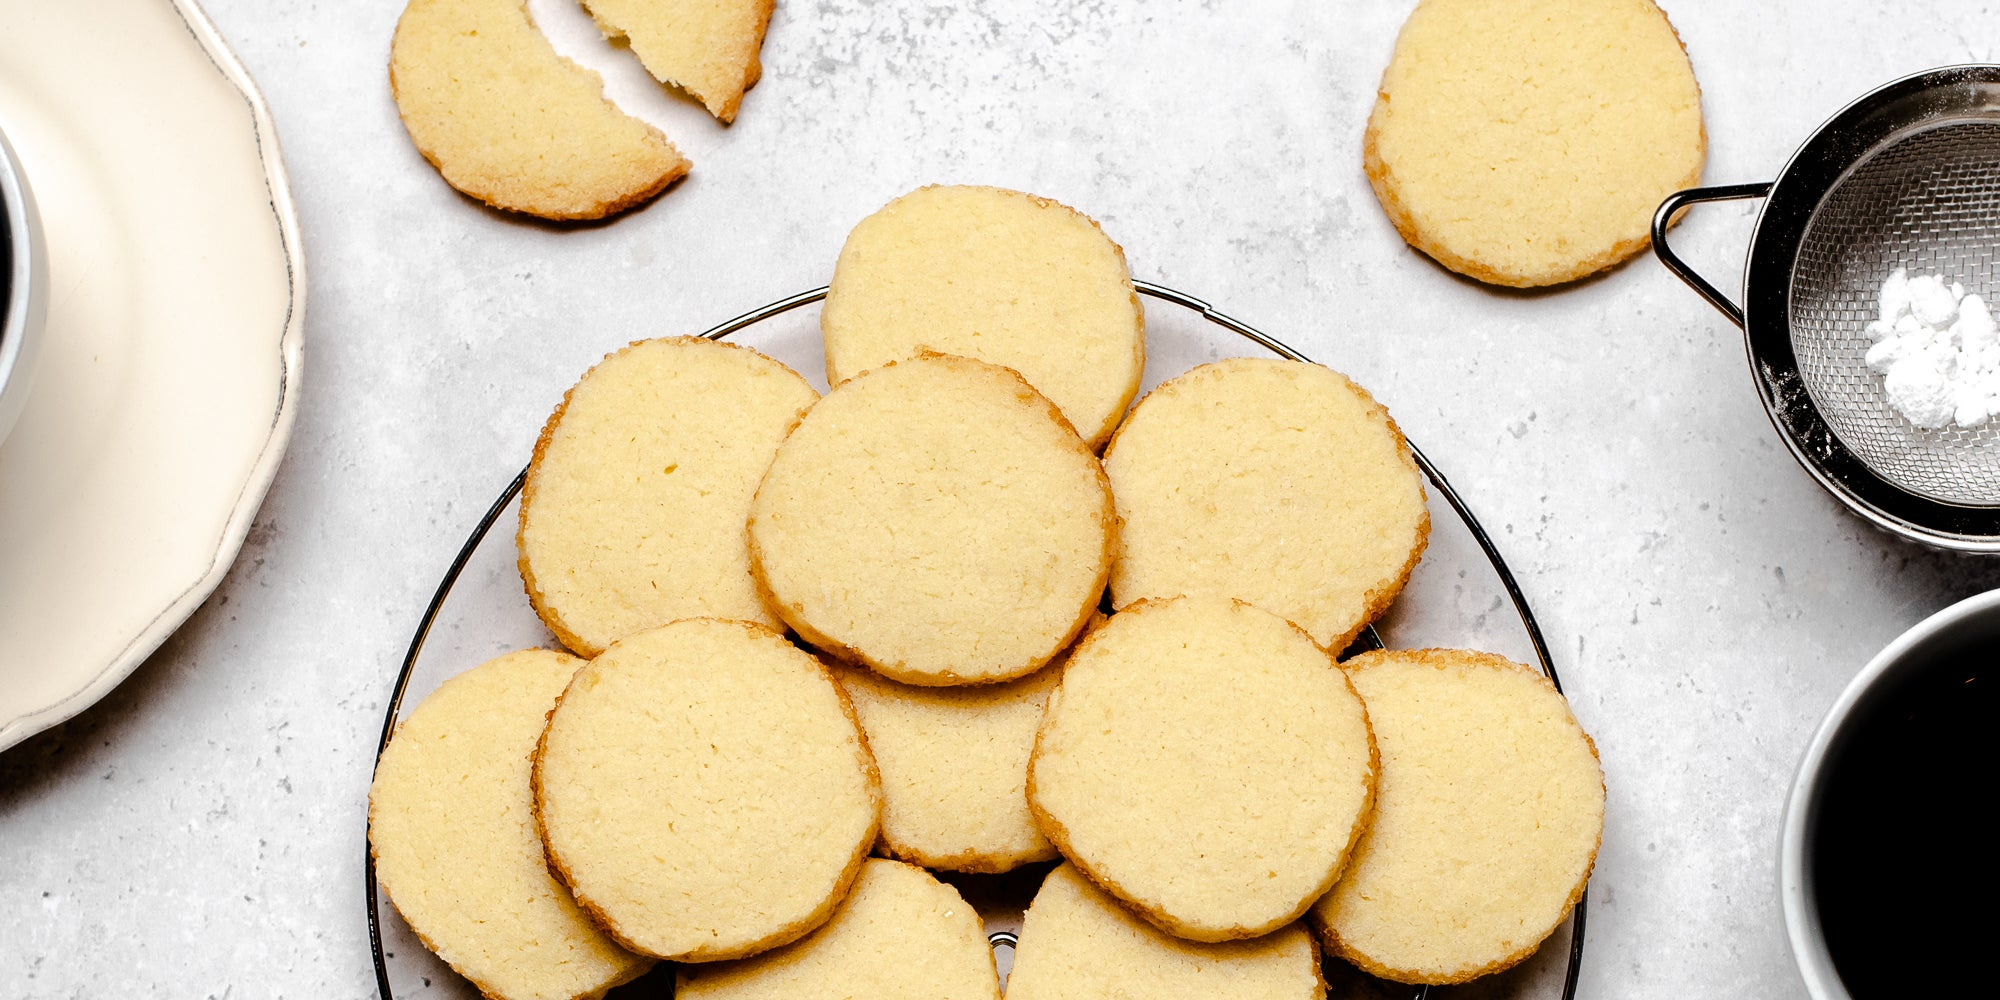 A batch of baked Shortbread Dough biscuits on a plate, next to a sieve